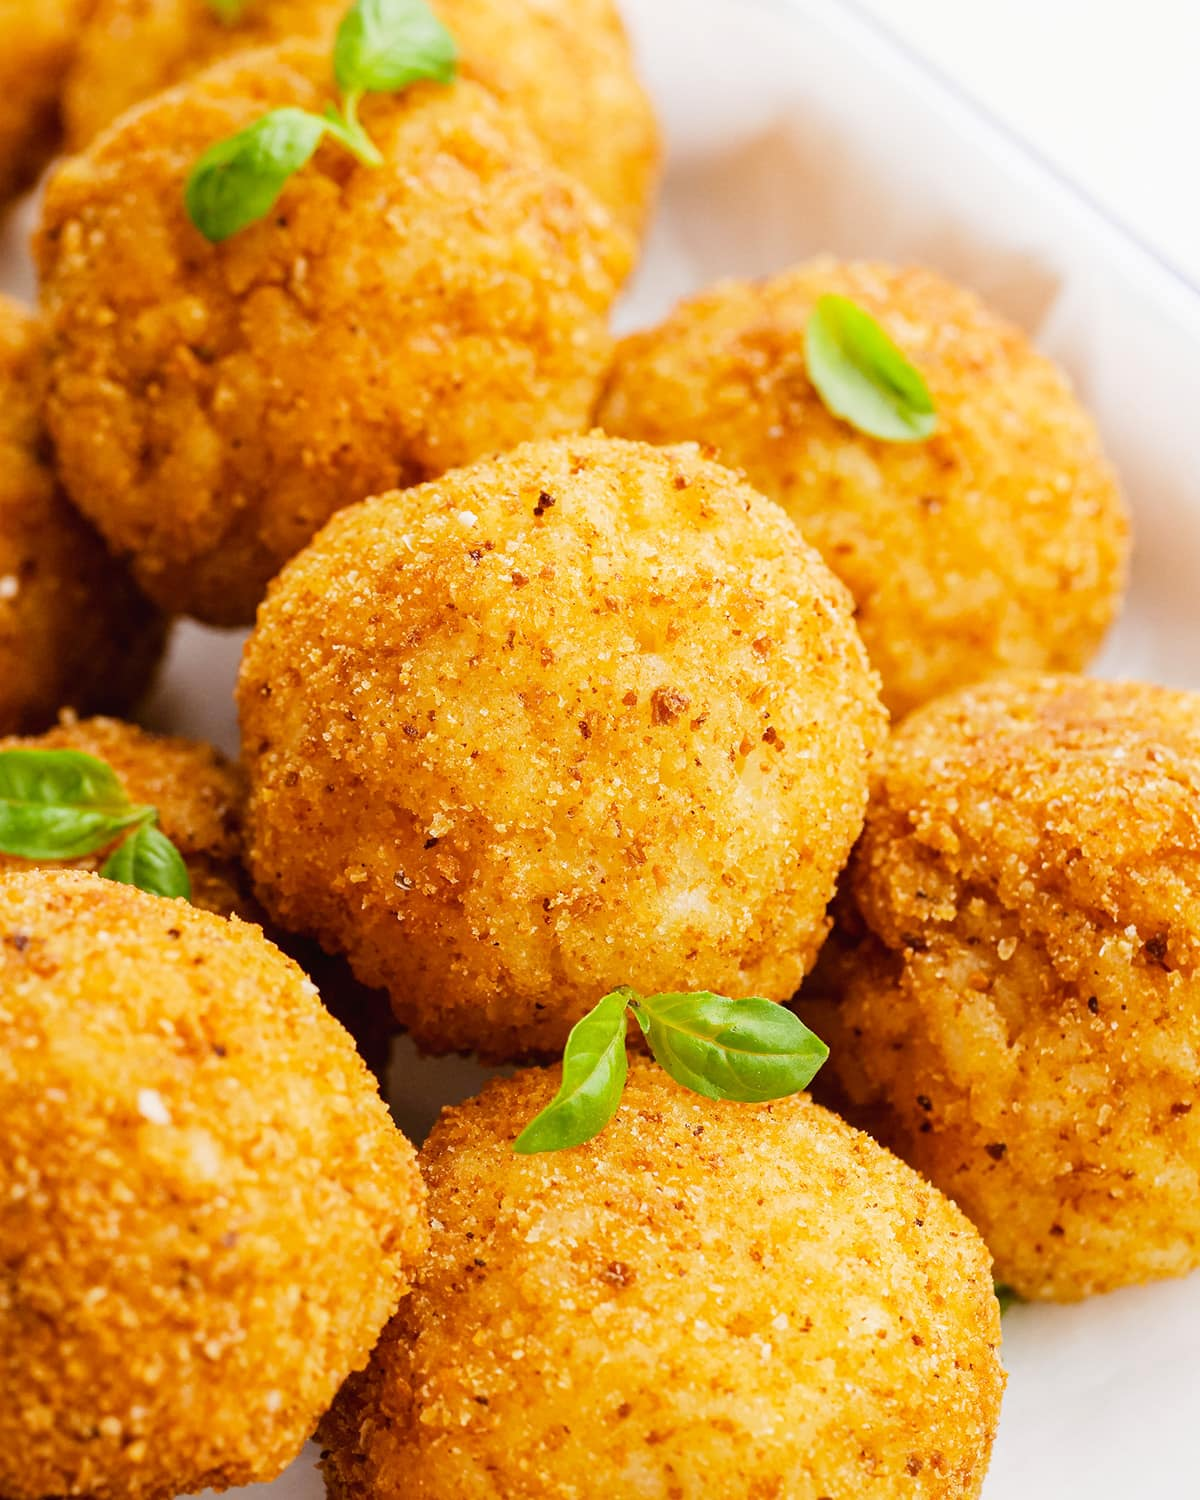 A close up of arancini balls in a pile, with small basil leaves among them.